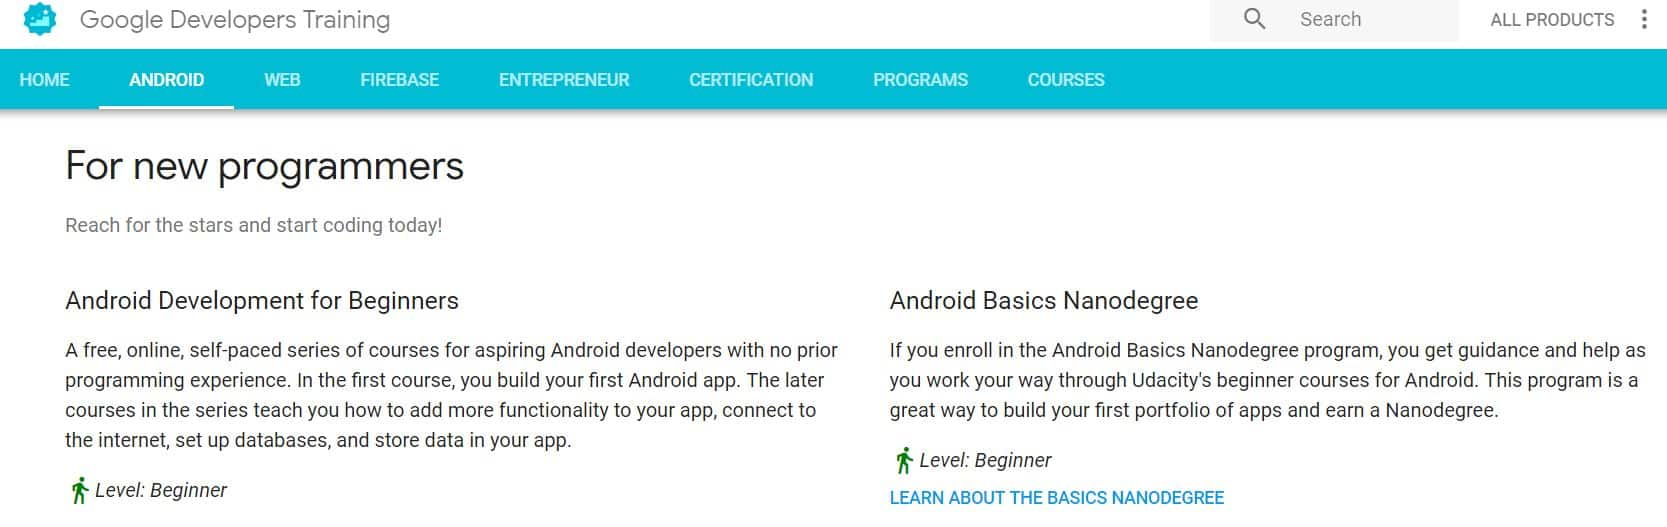 Learn Mobile App Development with Google Developers Training